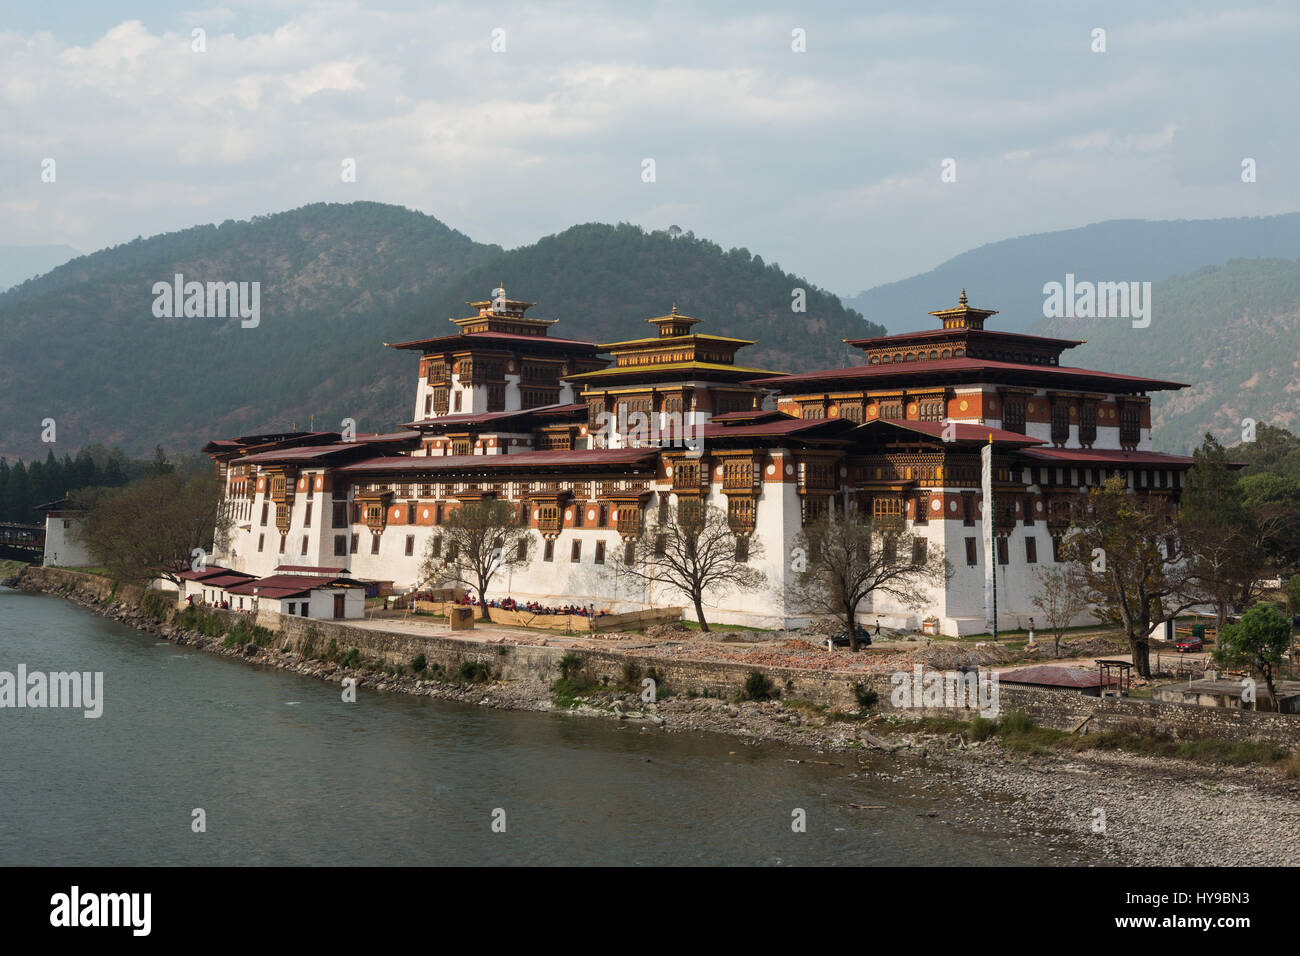 Punakha Dzong and the Mo Chhu River.  Punakha, Bhutan. - Stock Image